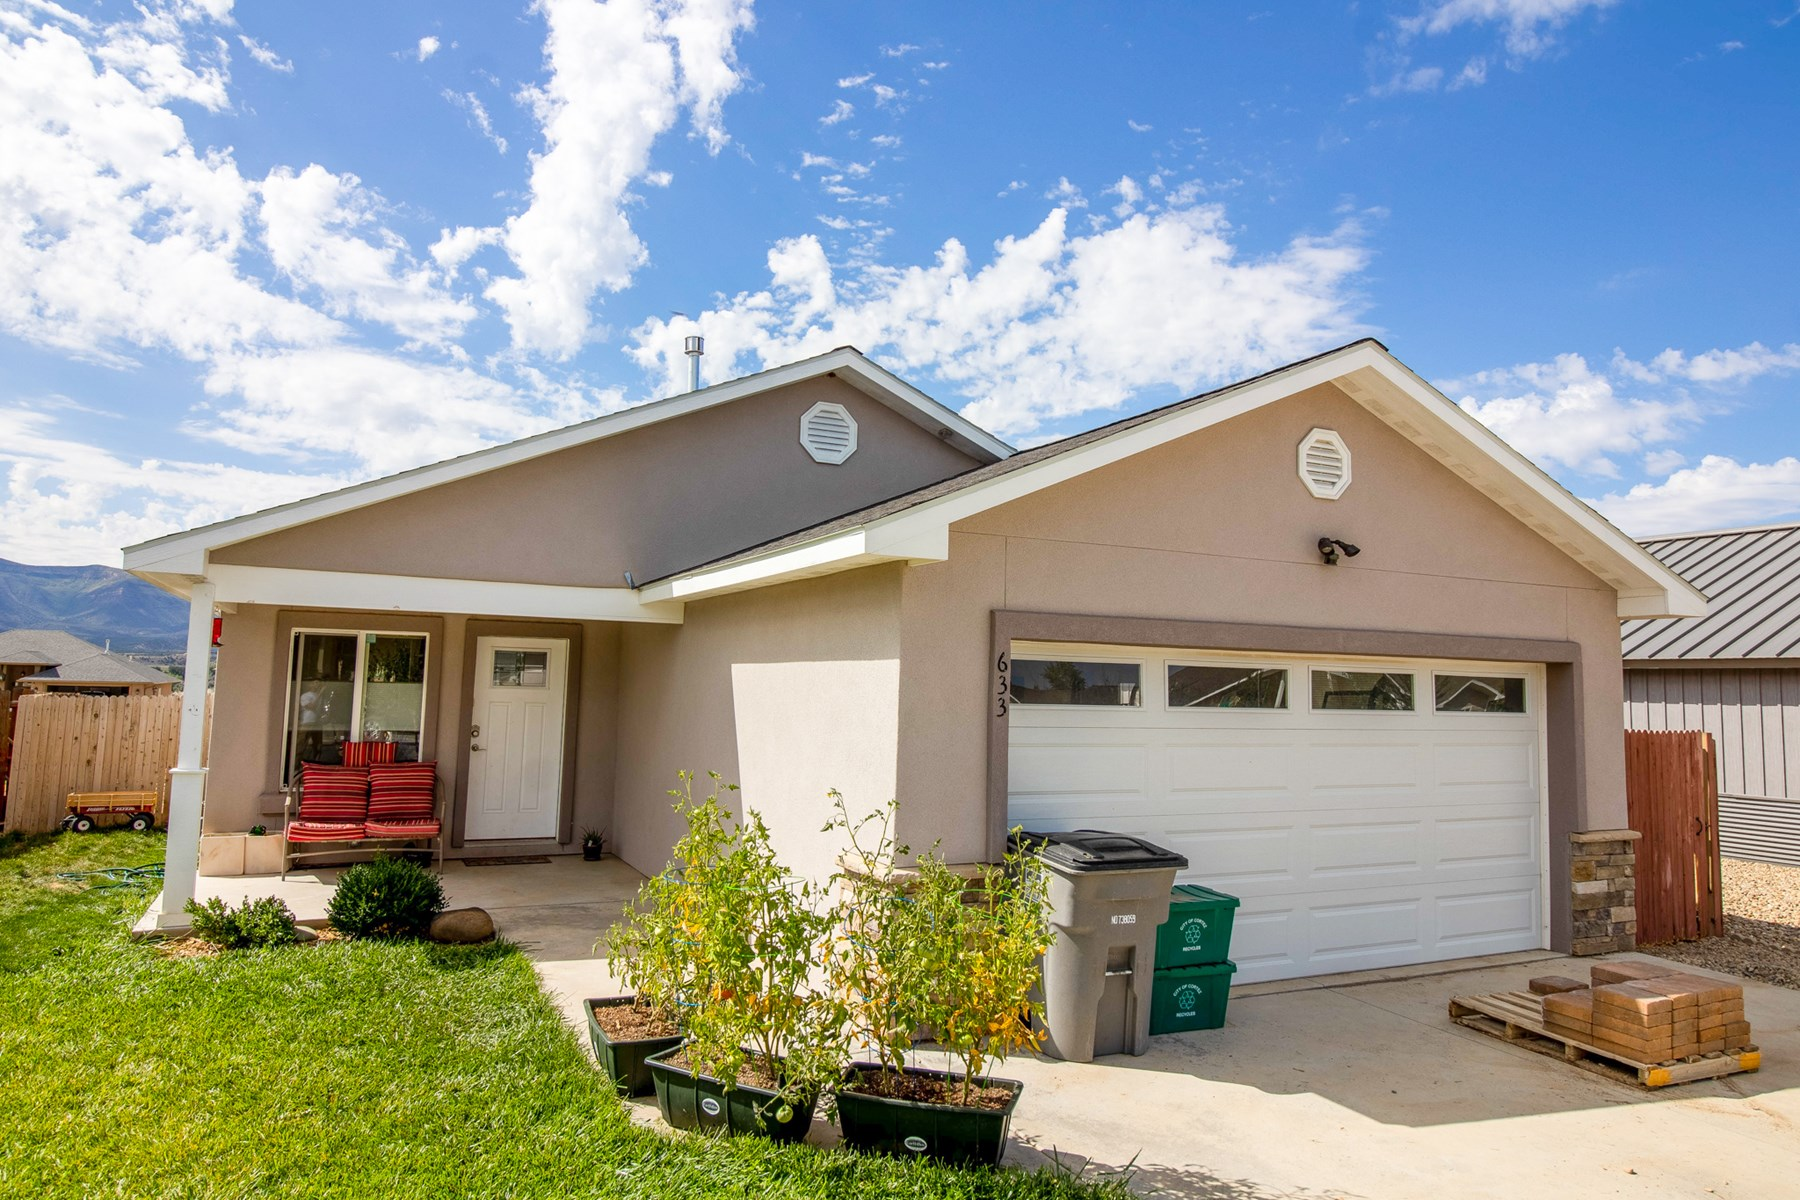 In-town Family Home for Sale in Cortez, CO!